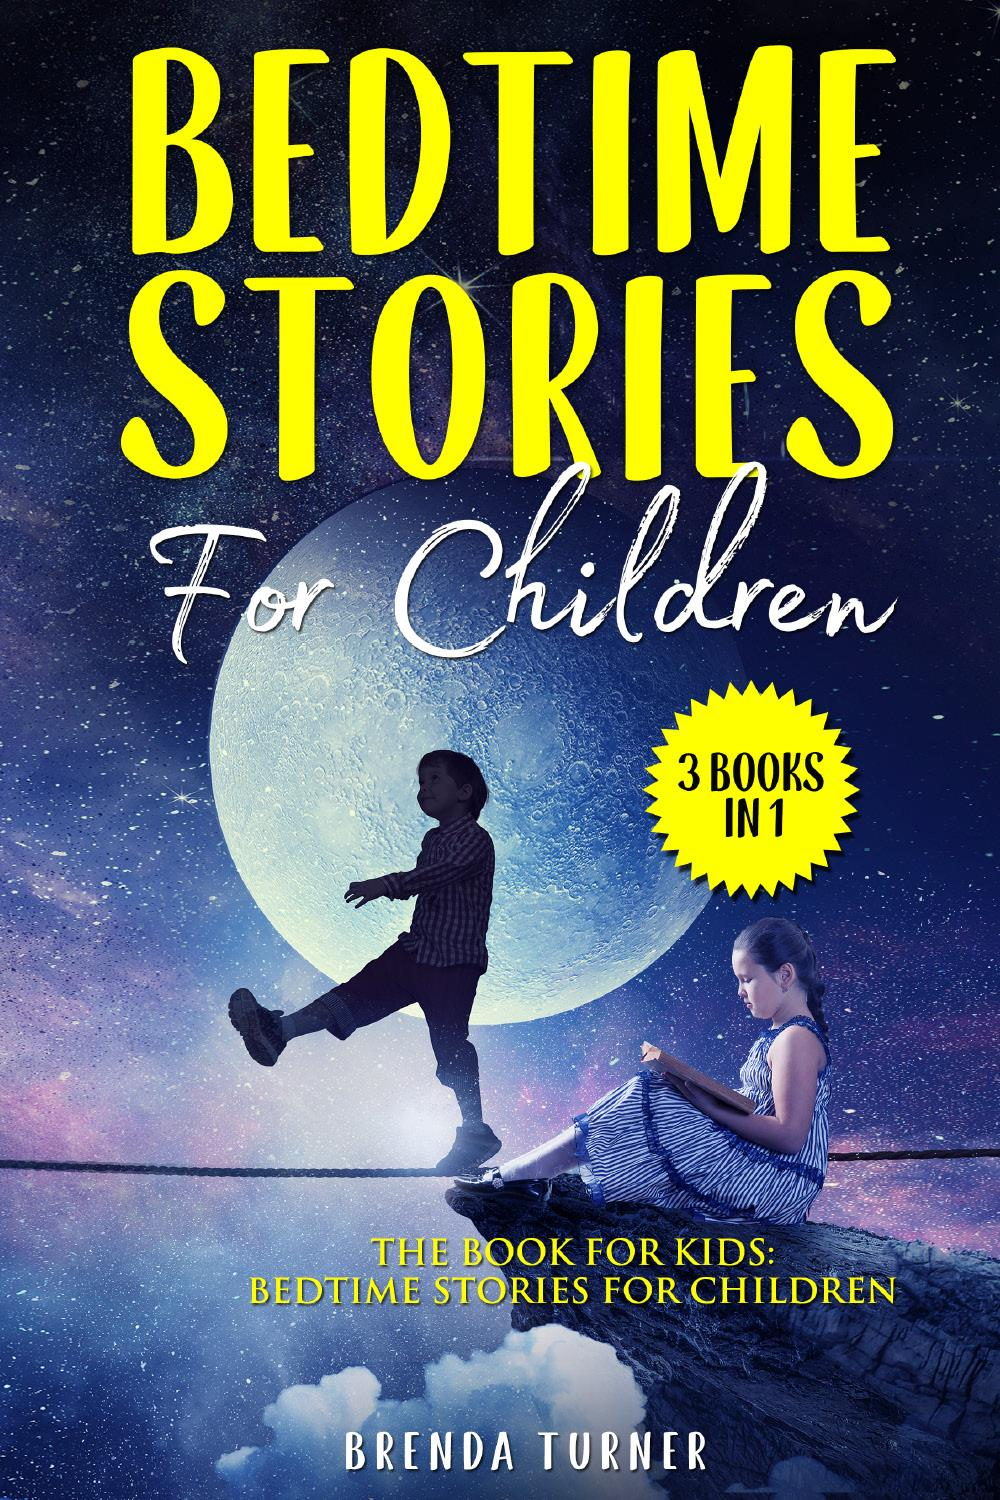 Bedtime Stories For Children (3 Books in 1). The Book for Kids: Bedtime Stories for Children